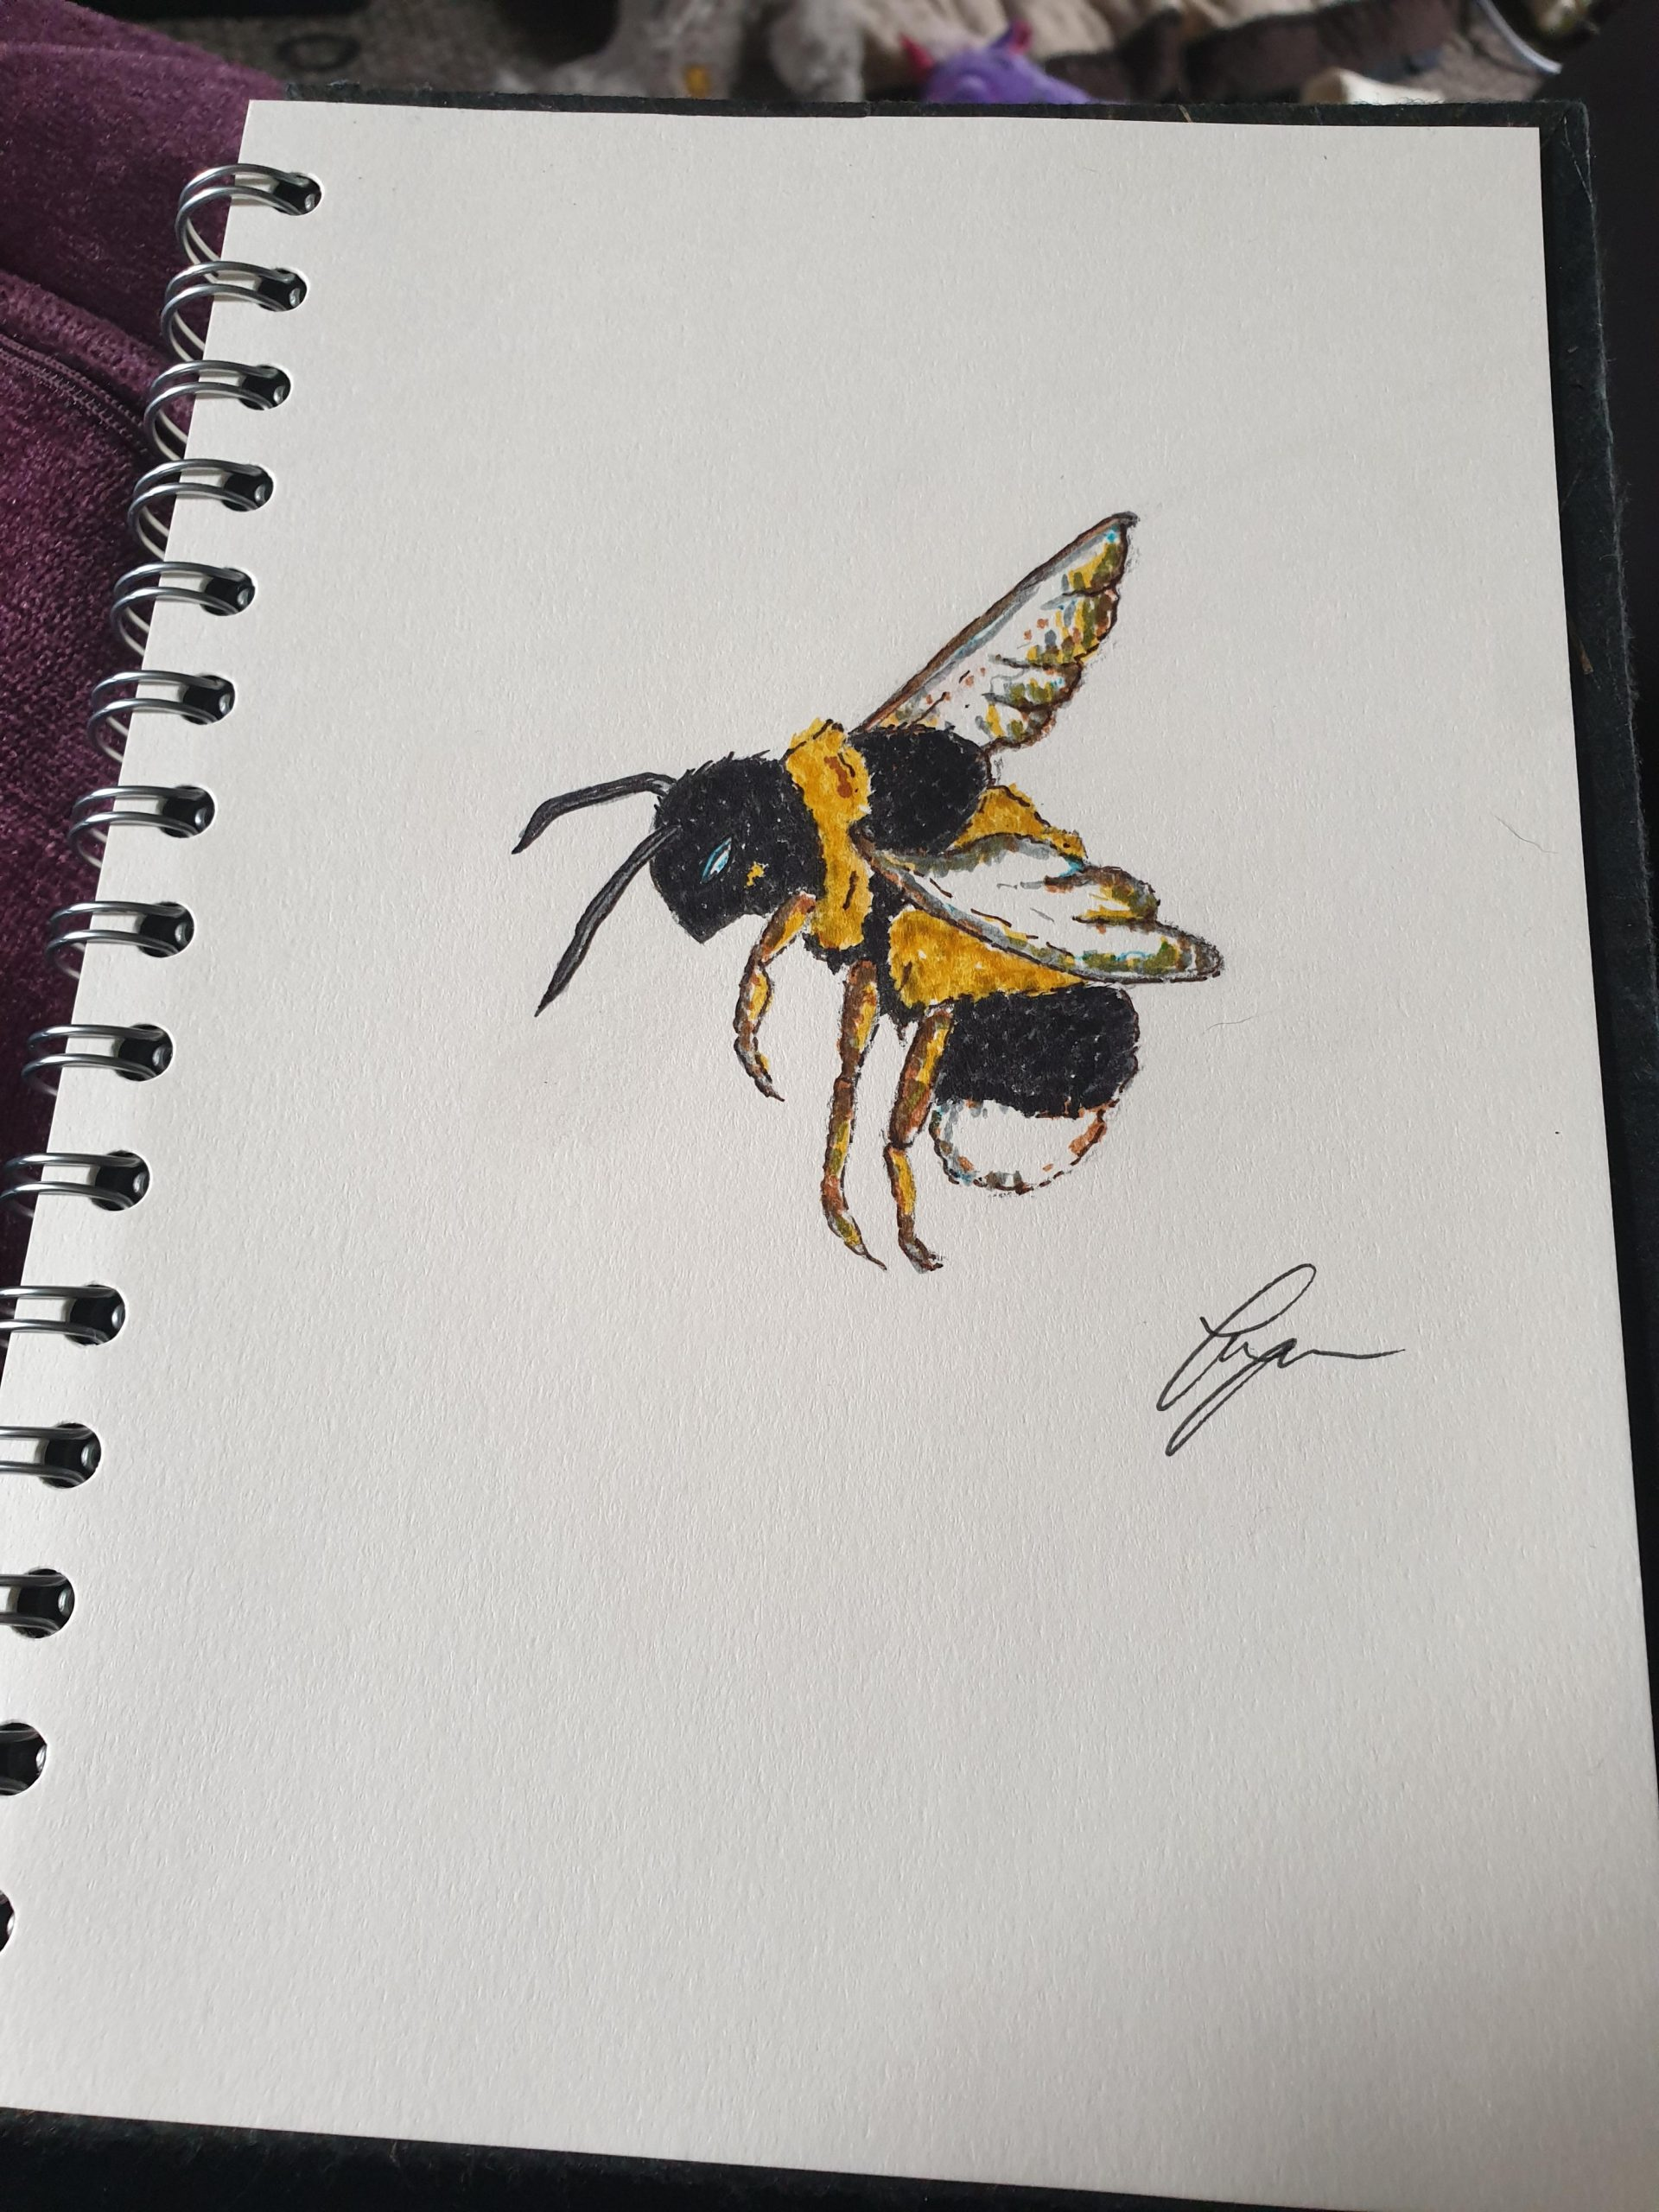 a0hwqpj7g7y41 scaled - My first go at a bumblebee - hobbies, crafts